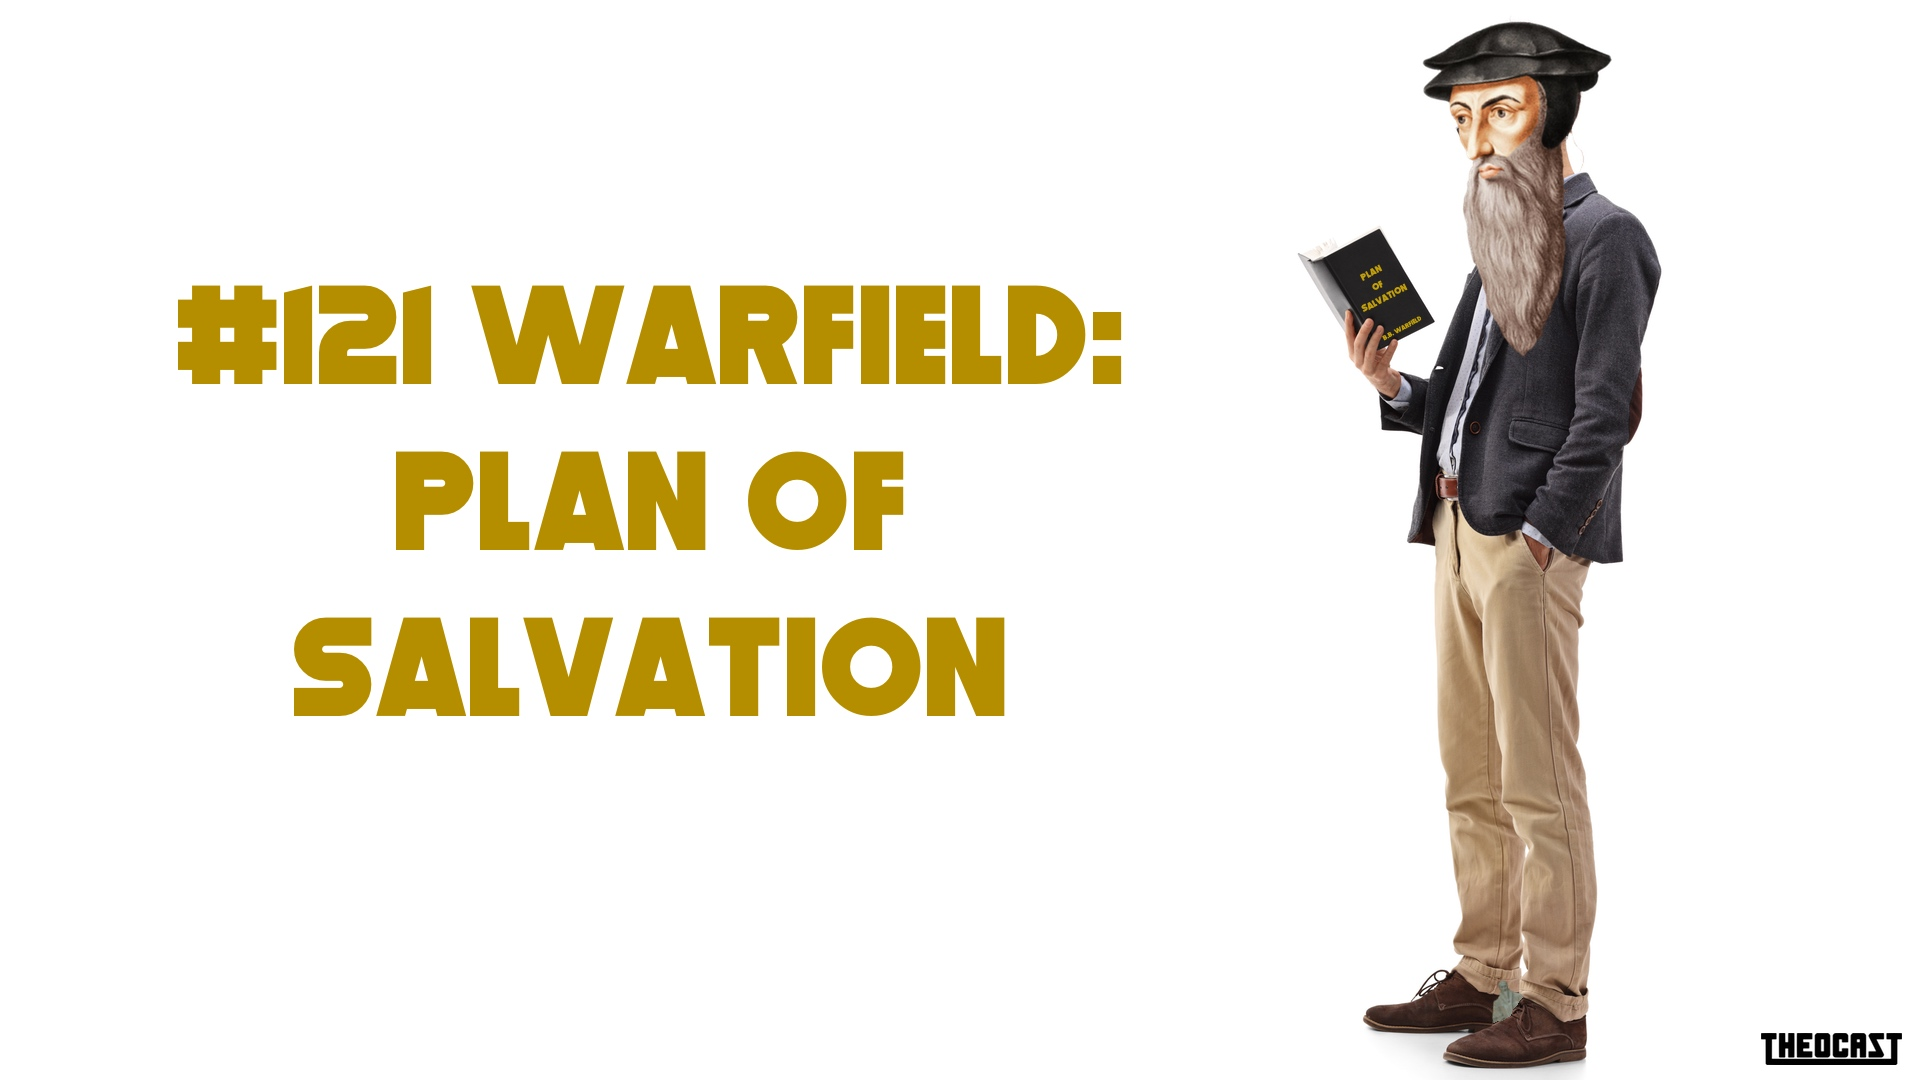 #121 Warfield: Plan of Salvation